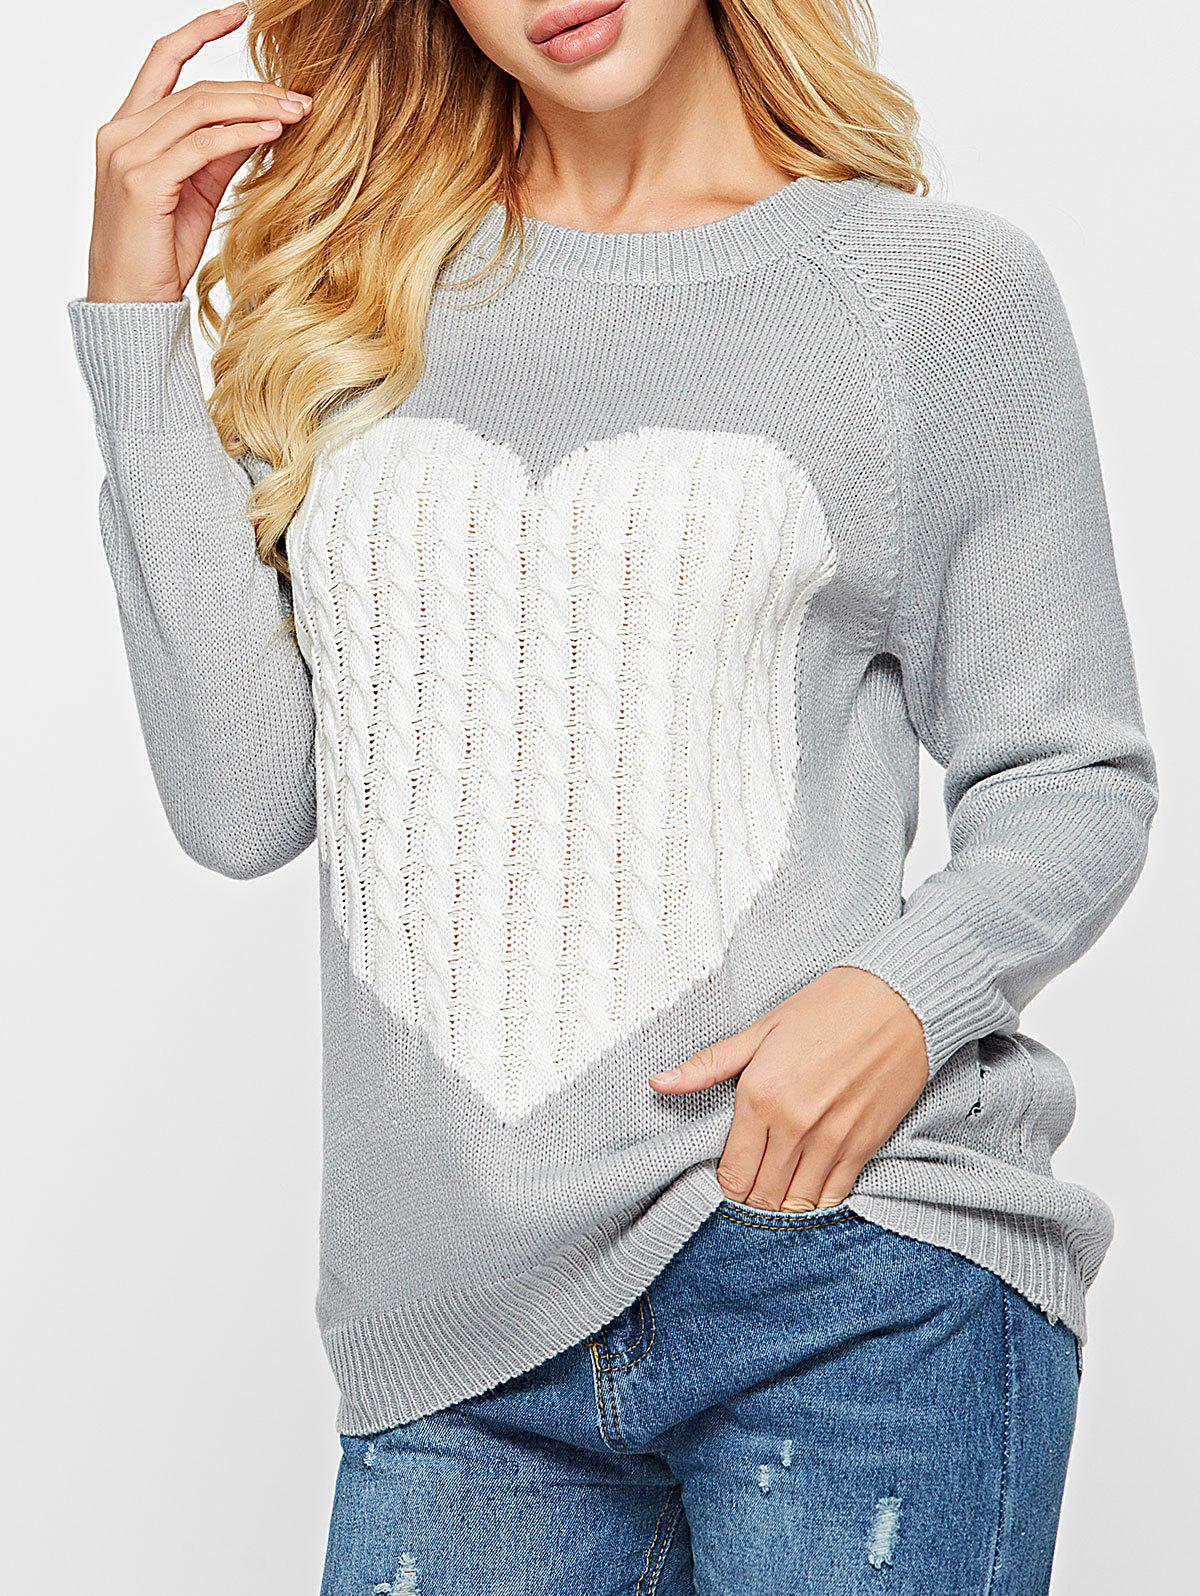 5431b1a25d Unique Heart Pattern Cable Knit Sweater